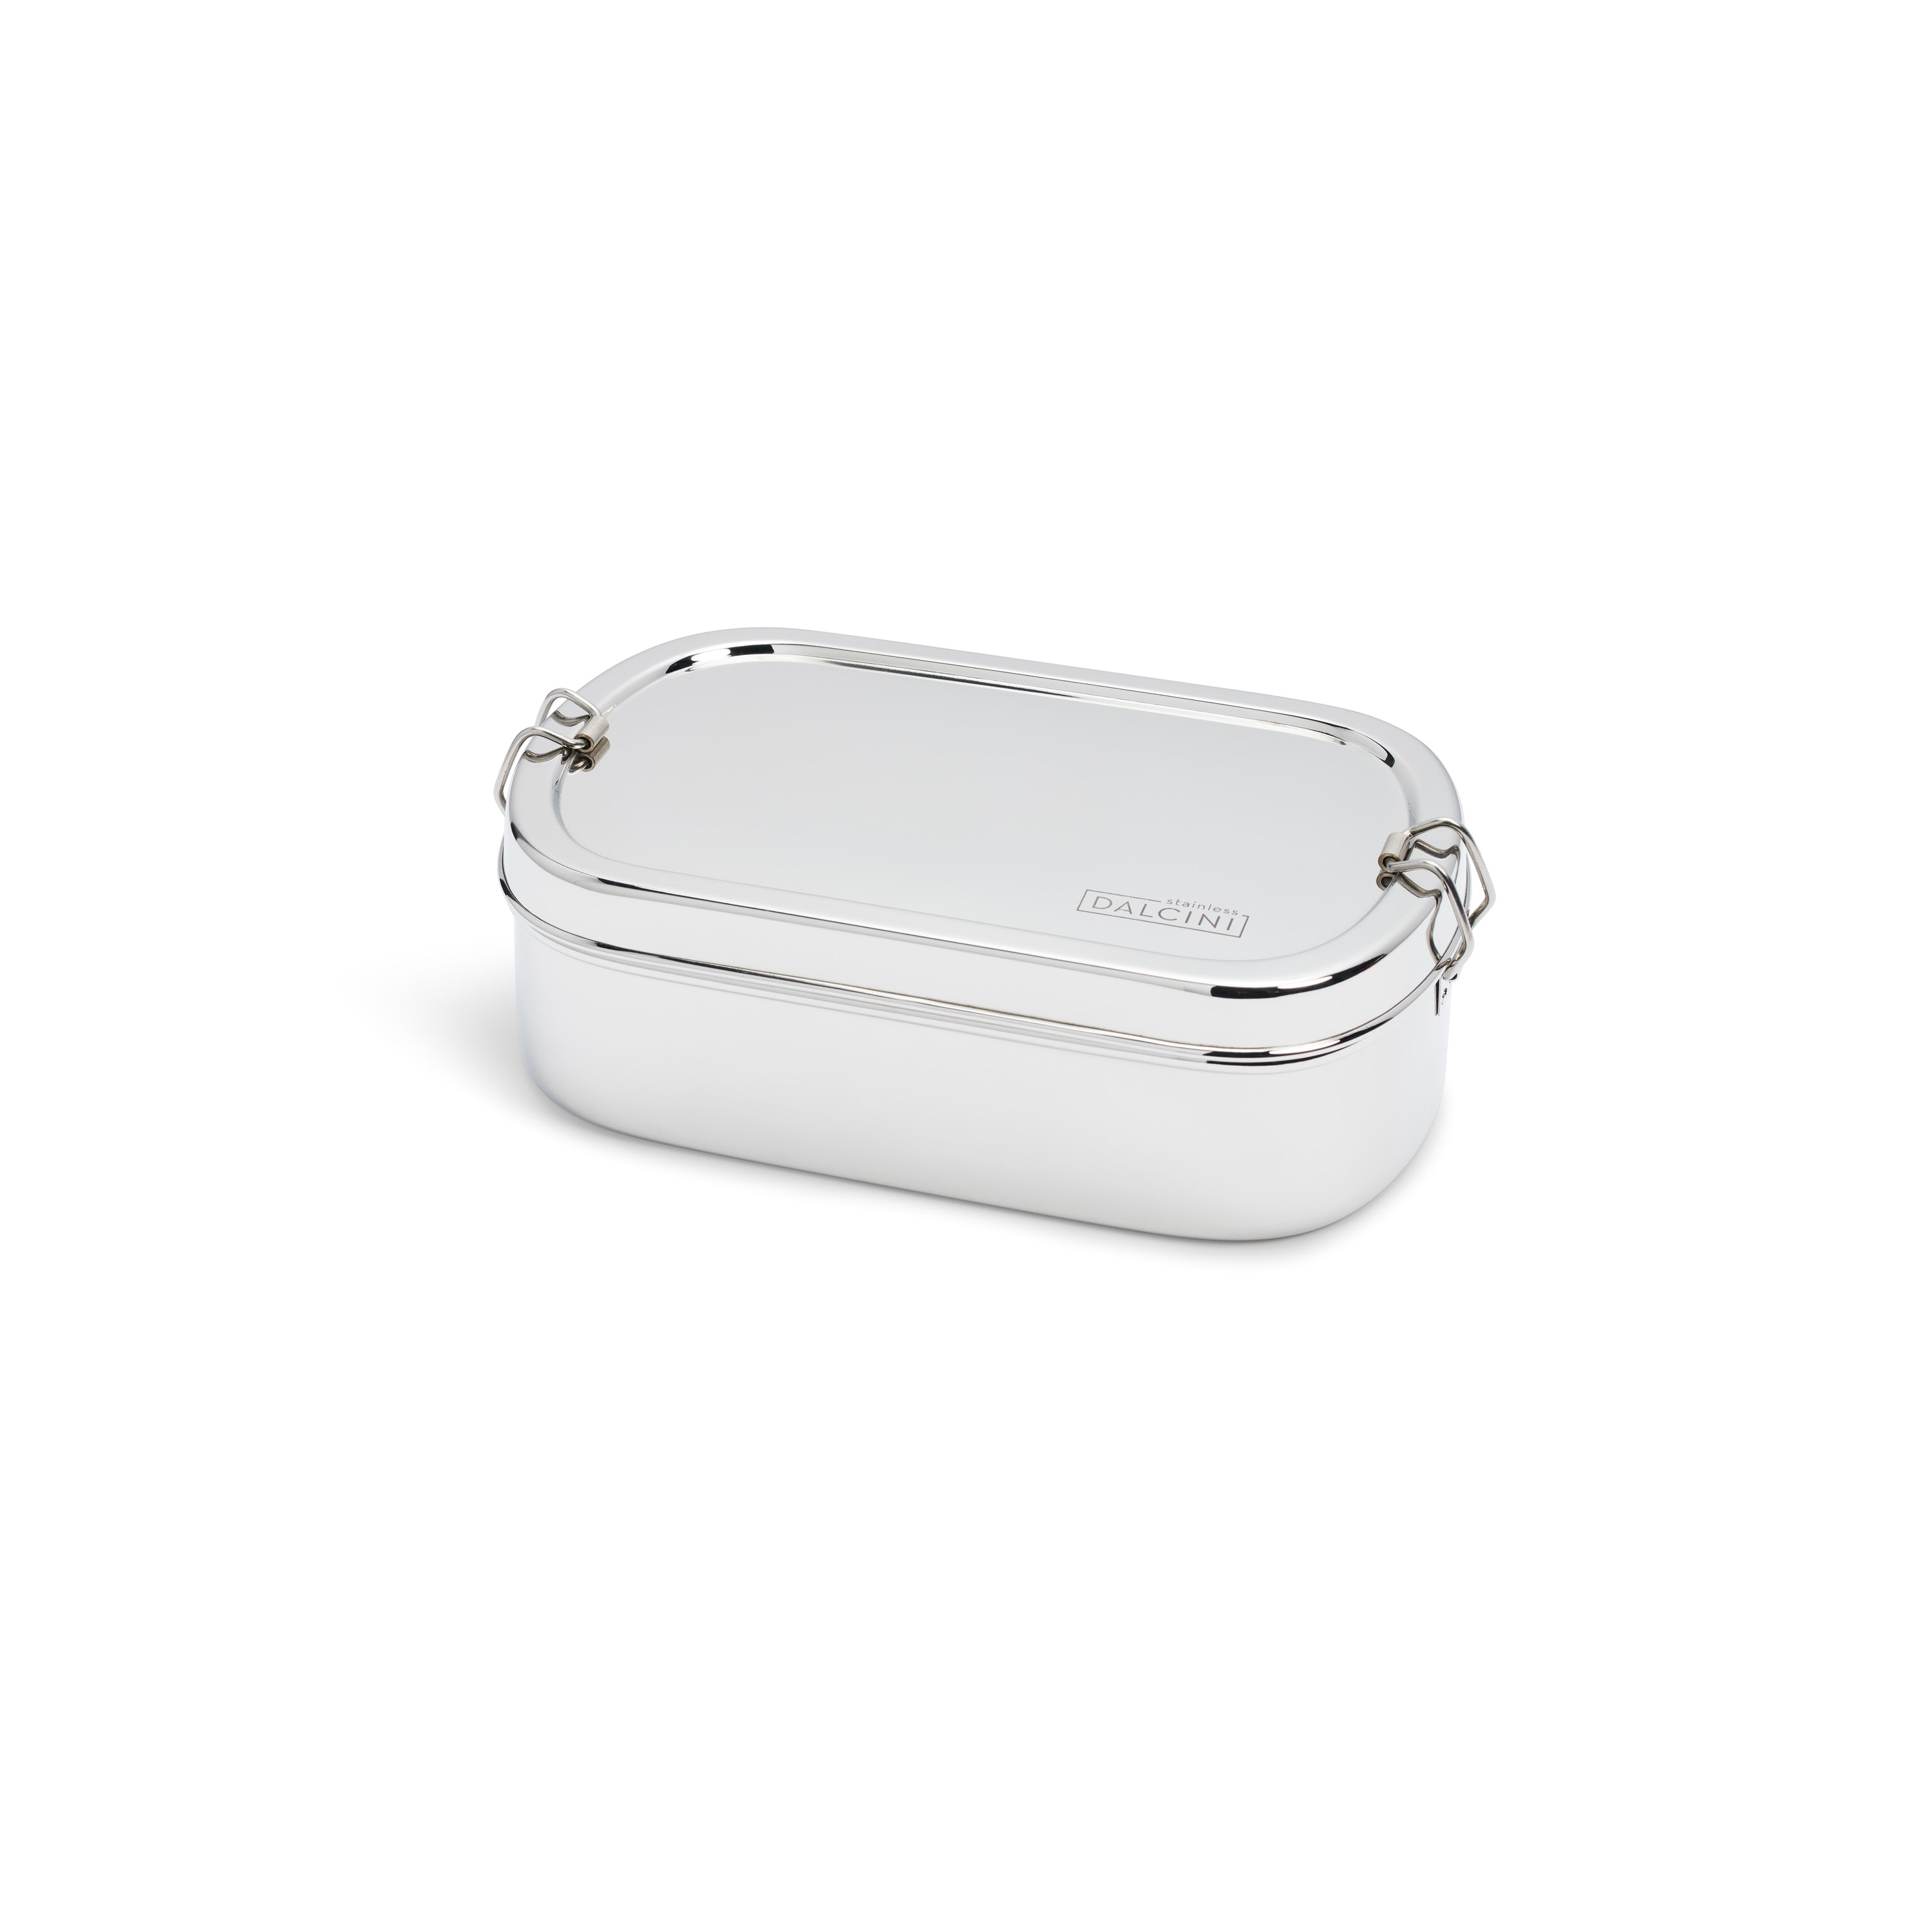 Large Oval with Clips - DALCINI Stainless